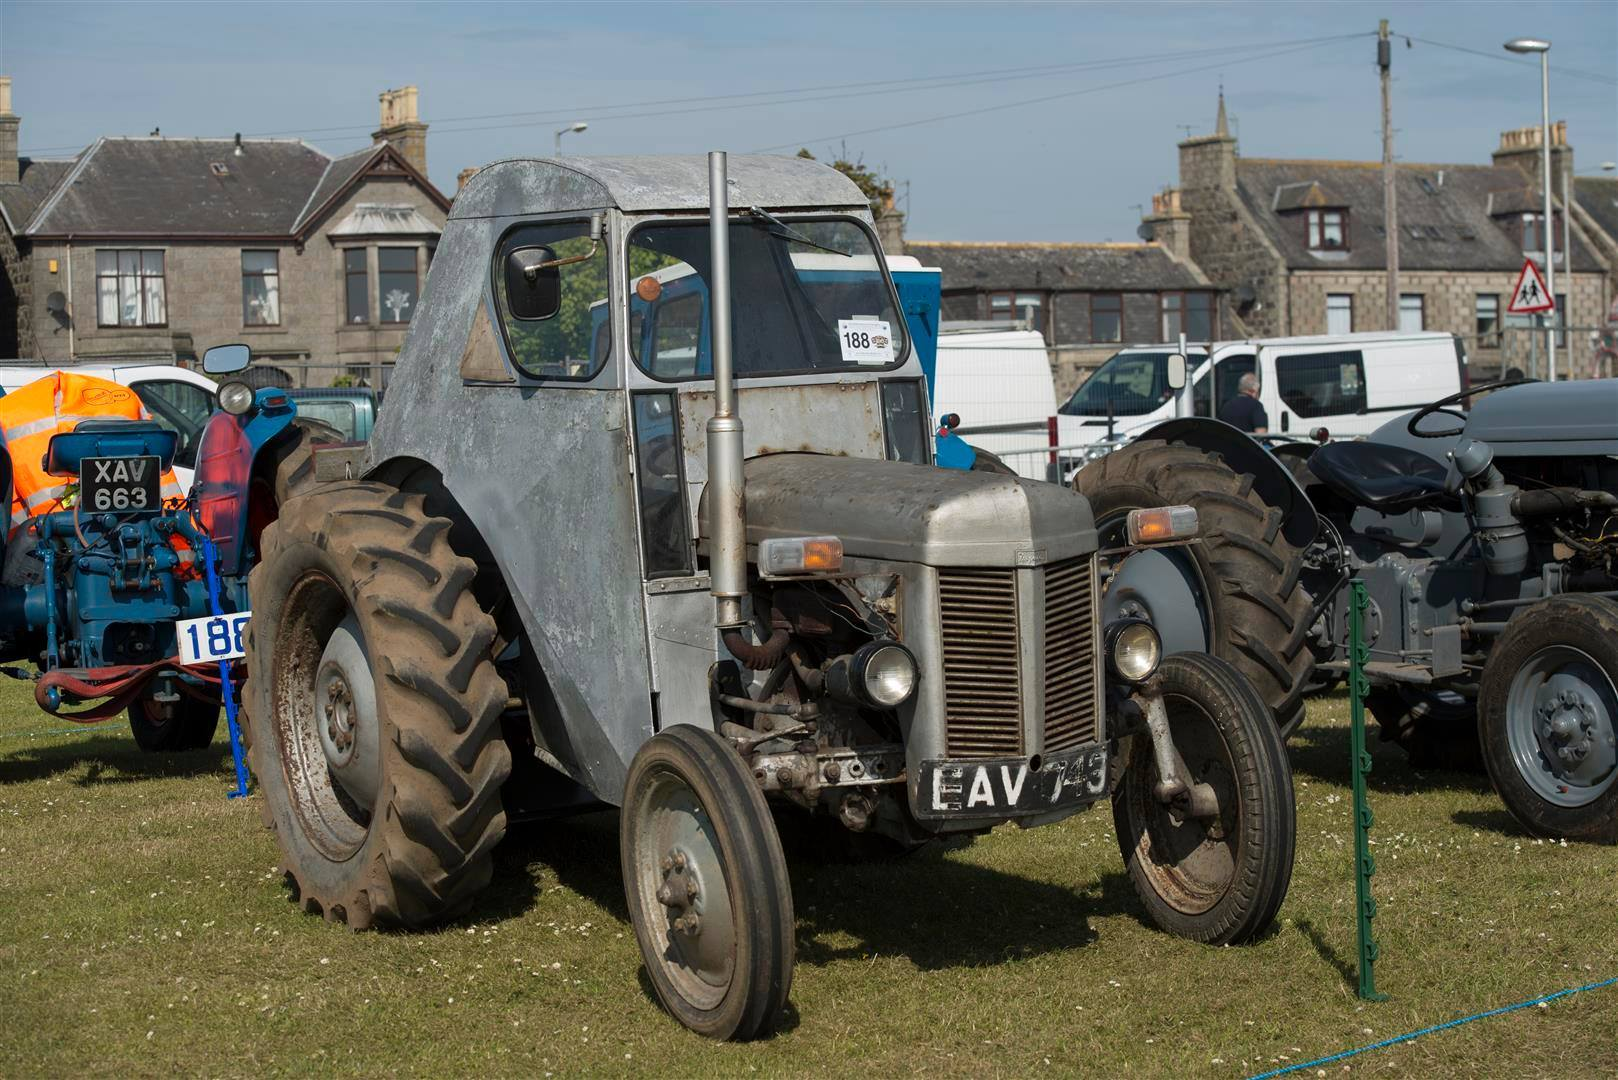 Fraserburgh vintage car rally 2014. Pictures by Stanley Wright